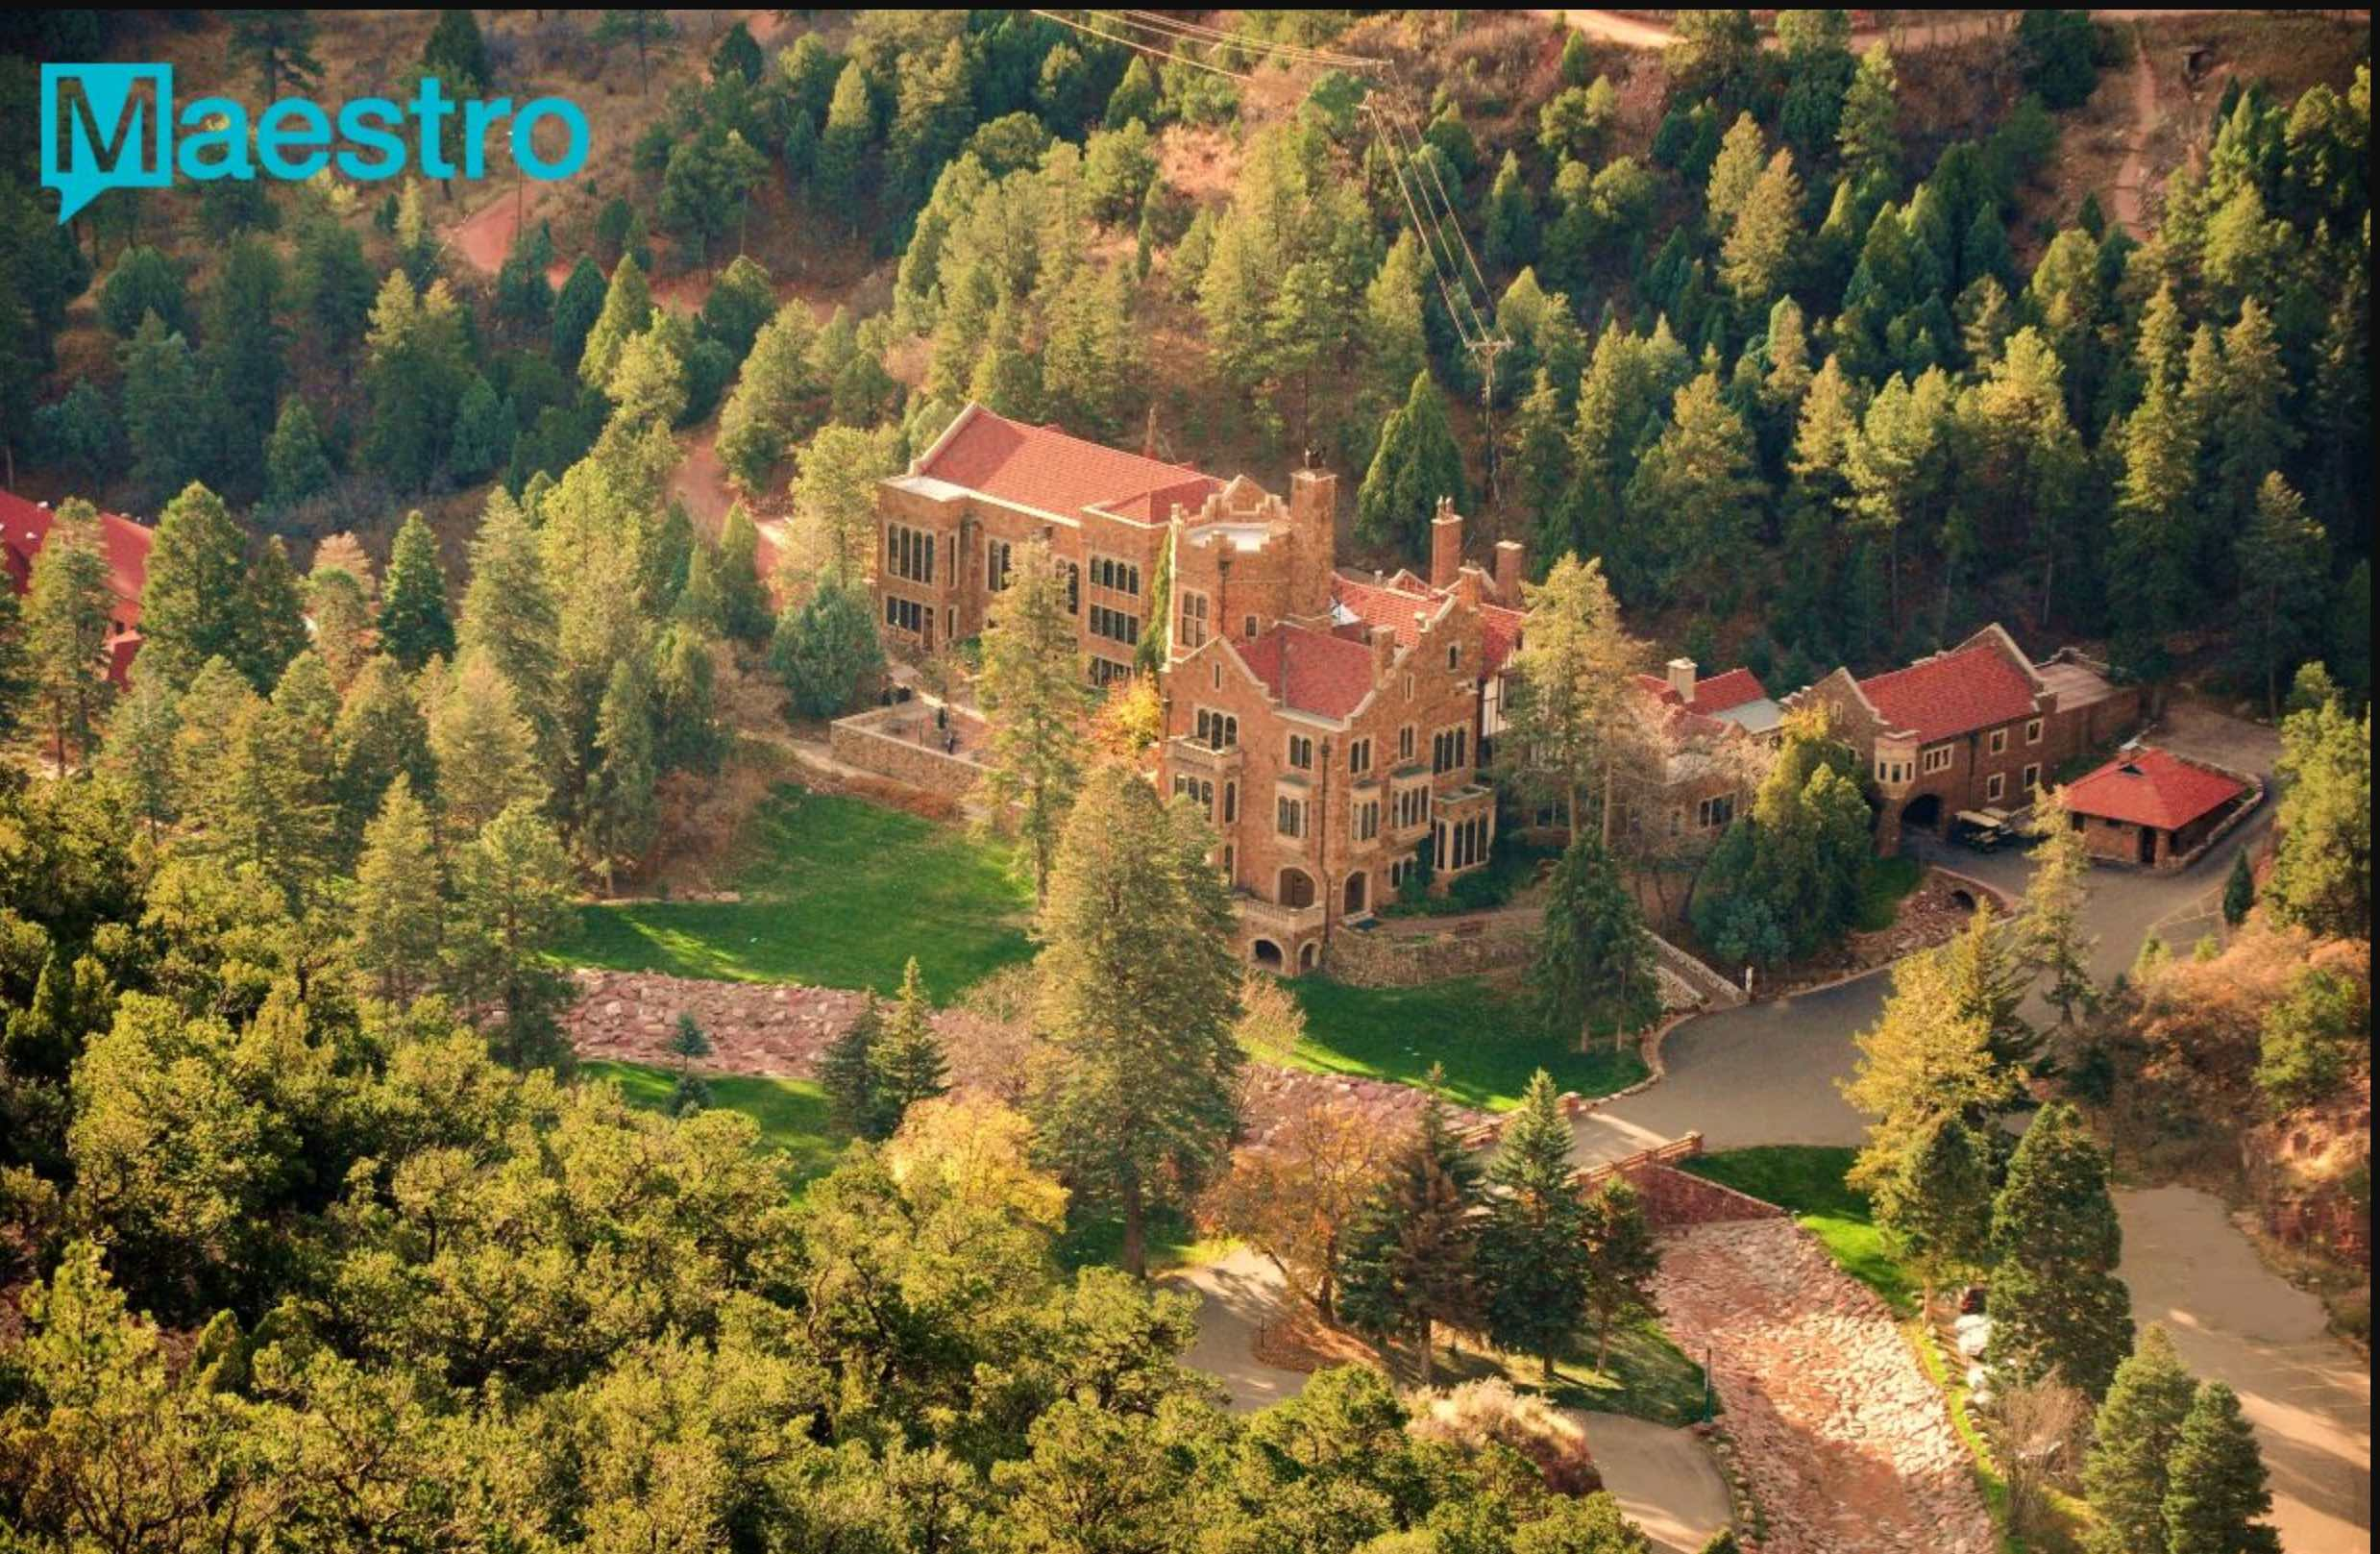 maestro image left 1 - Maestro PMS Collection of Open APIs Gives Users The Freedom to Install Their Choice of The Latest 3rd Party Systems to Enhance Operations - Innovative Property Management Software Solutions Powering Hotels, Resorts & Multi‑Property Groups.